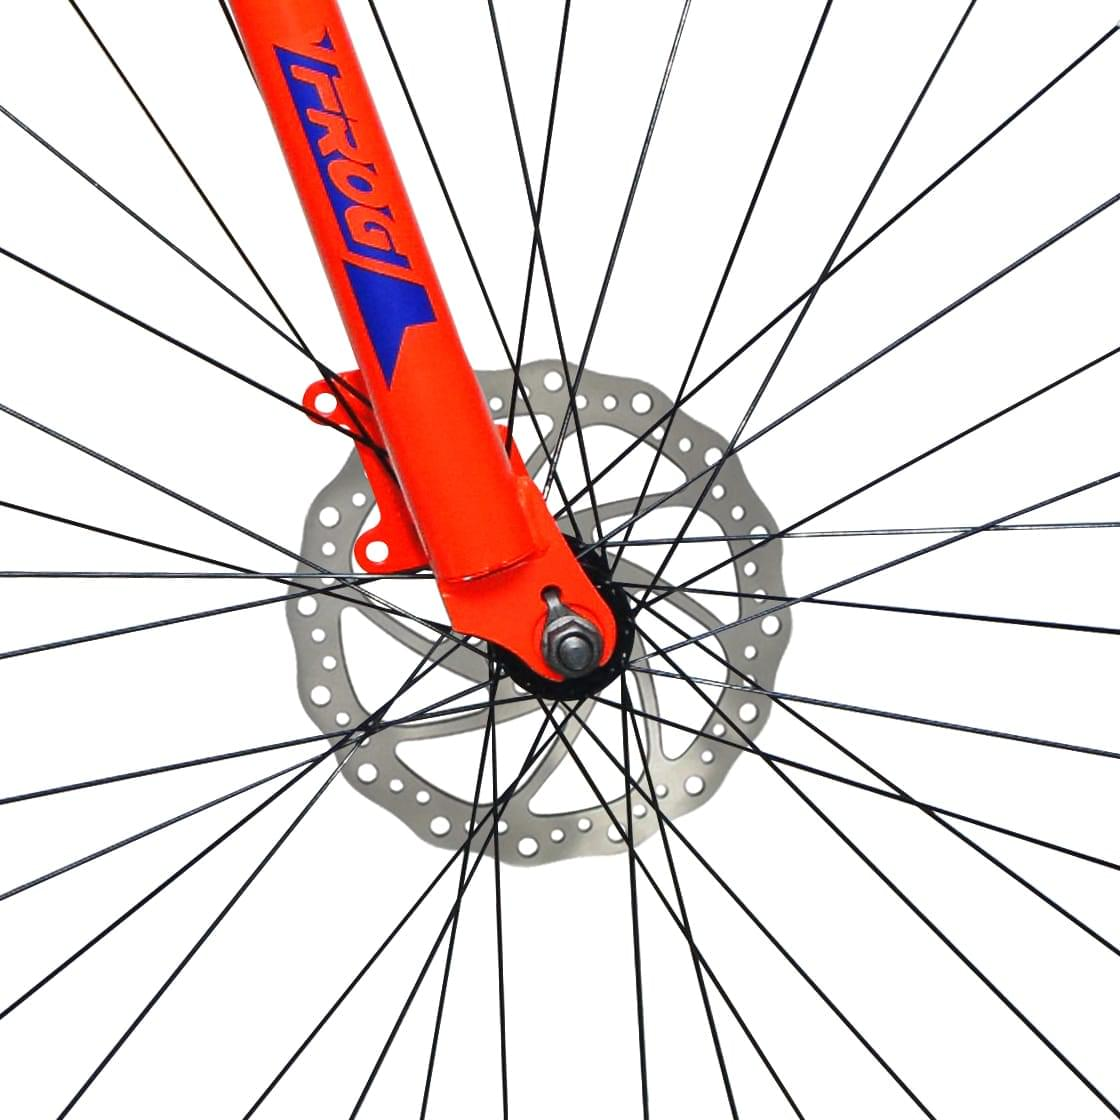 Hermes 26 Blue Orange (V-Brakes) image 3